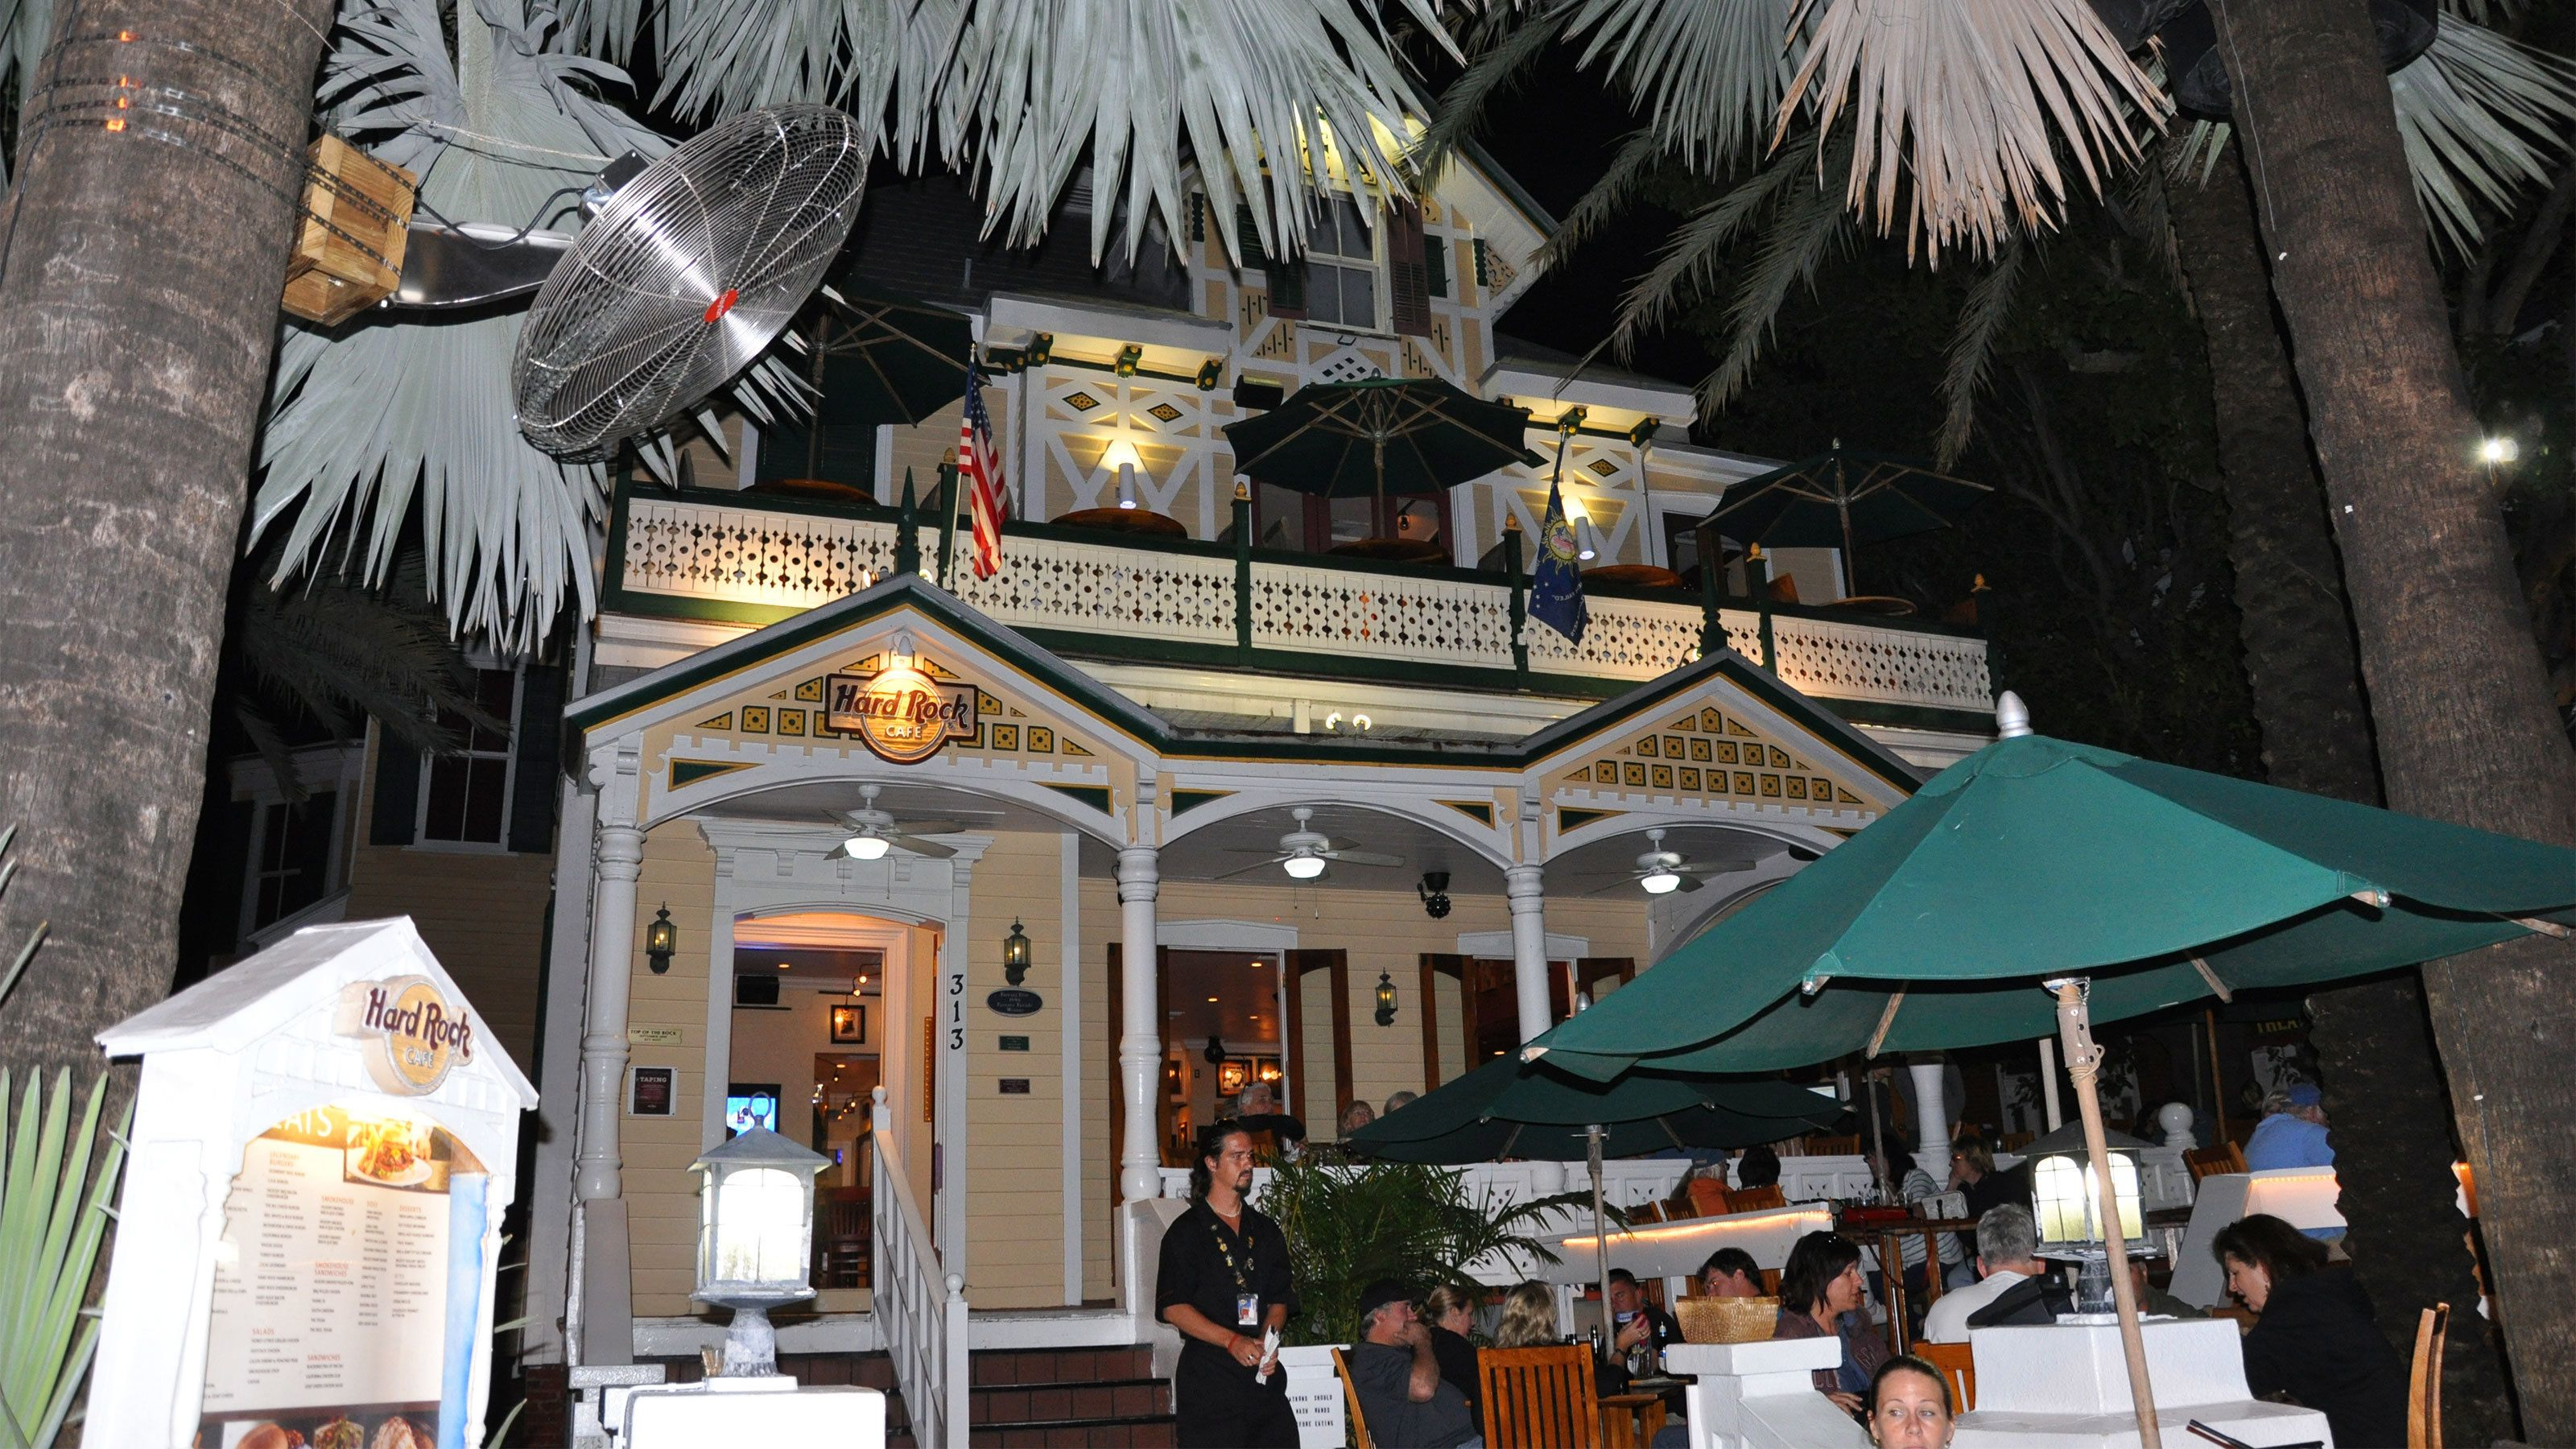 Dining outside the Hard Rock Cafe in Key West